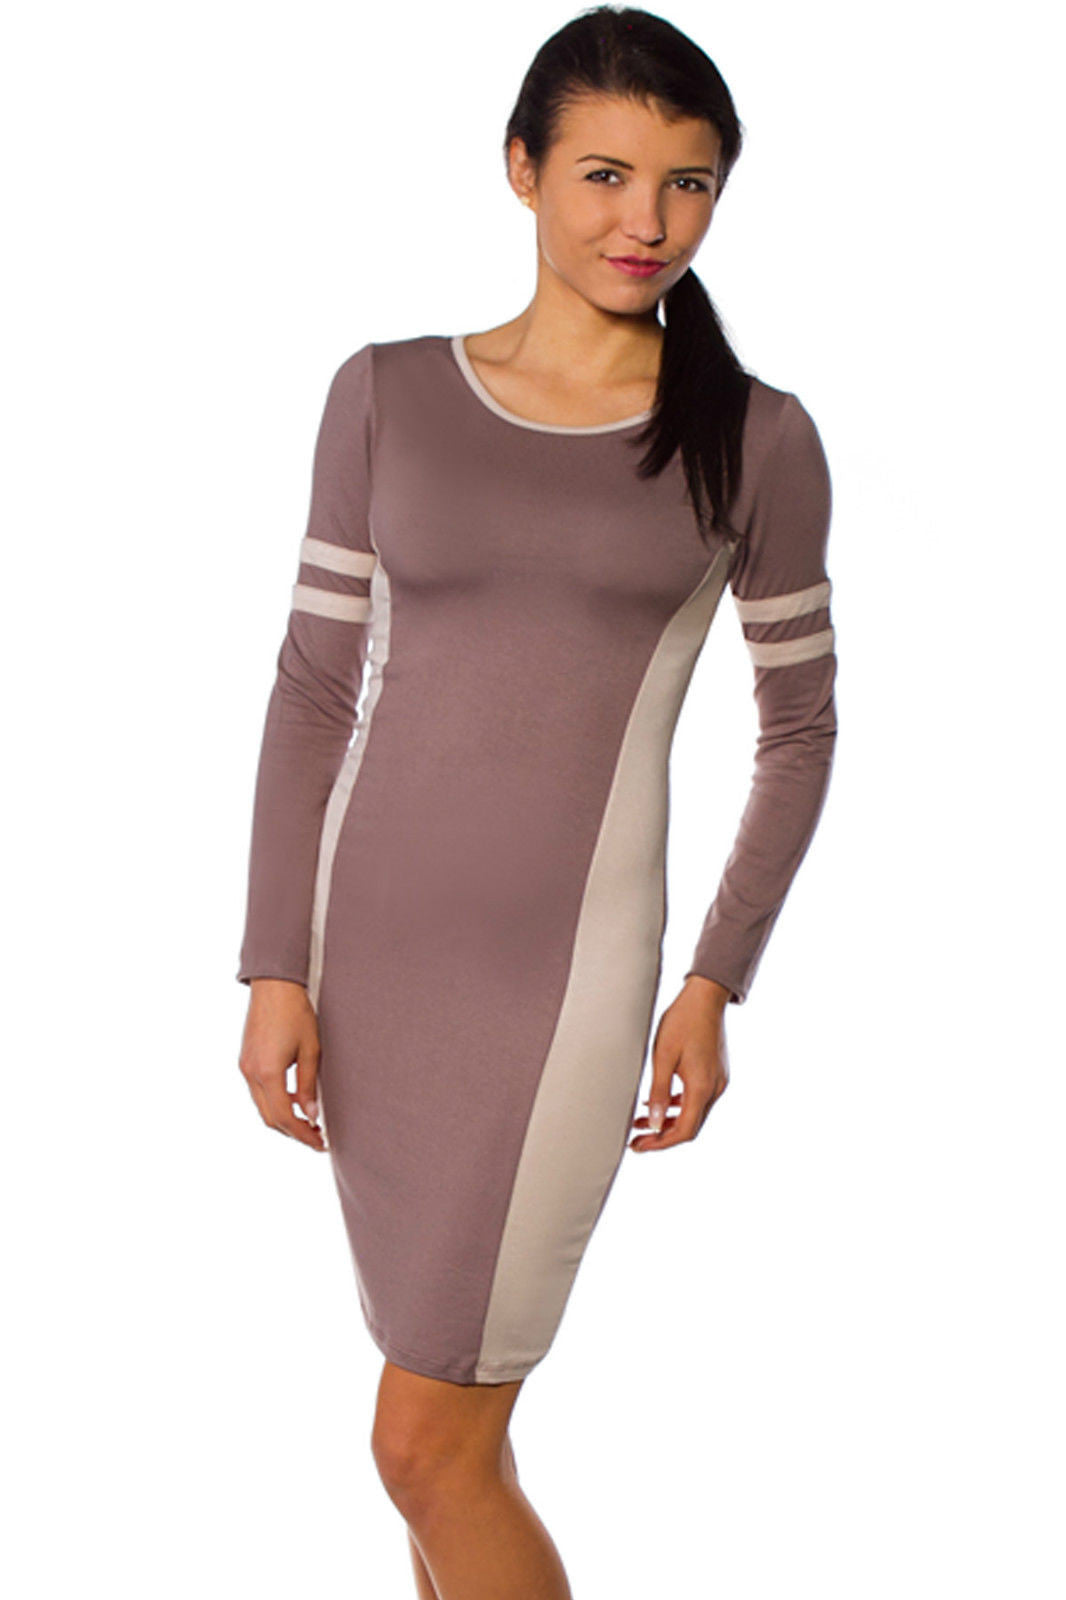 Sexy Ladies Dress Two Tone Colour Trendy Tunic Stylish ...